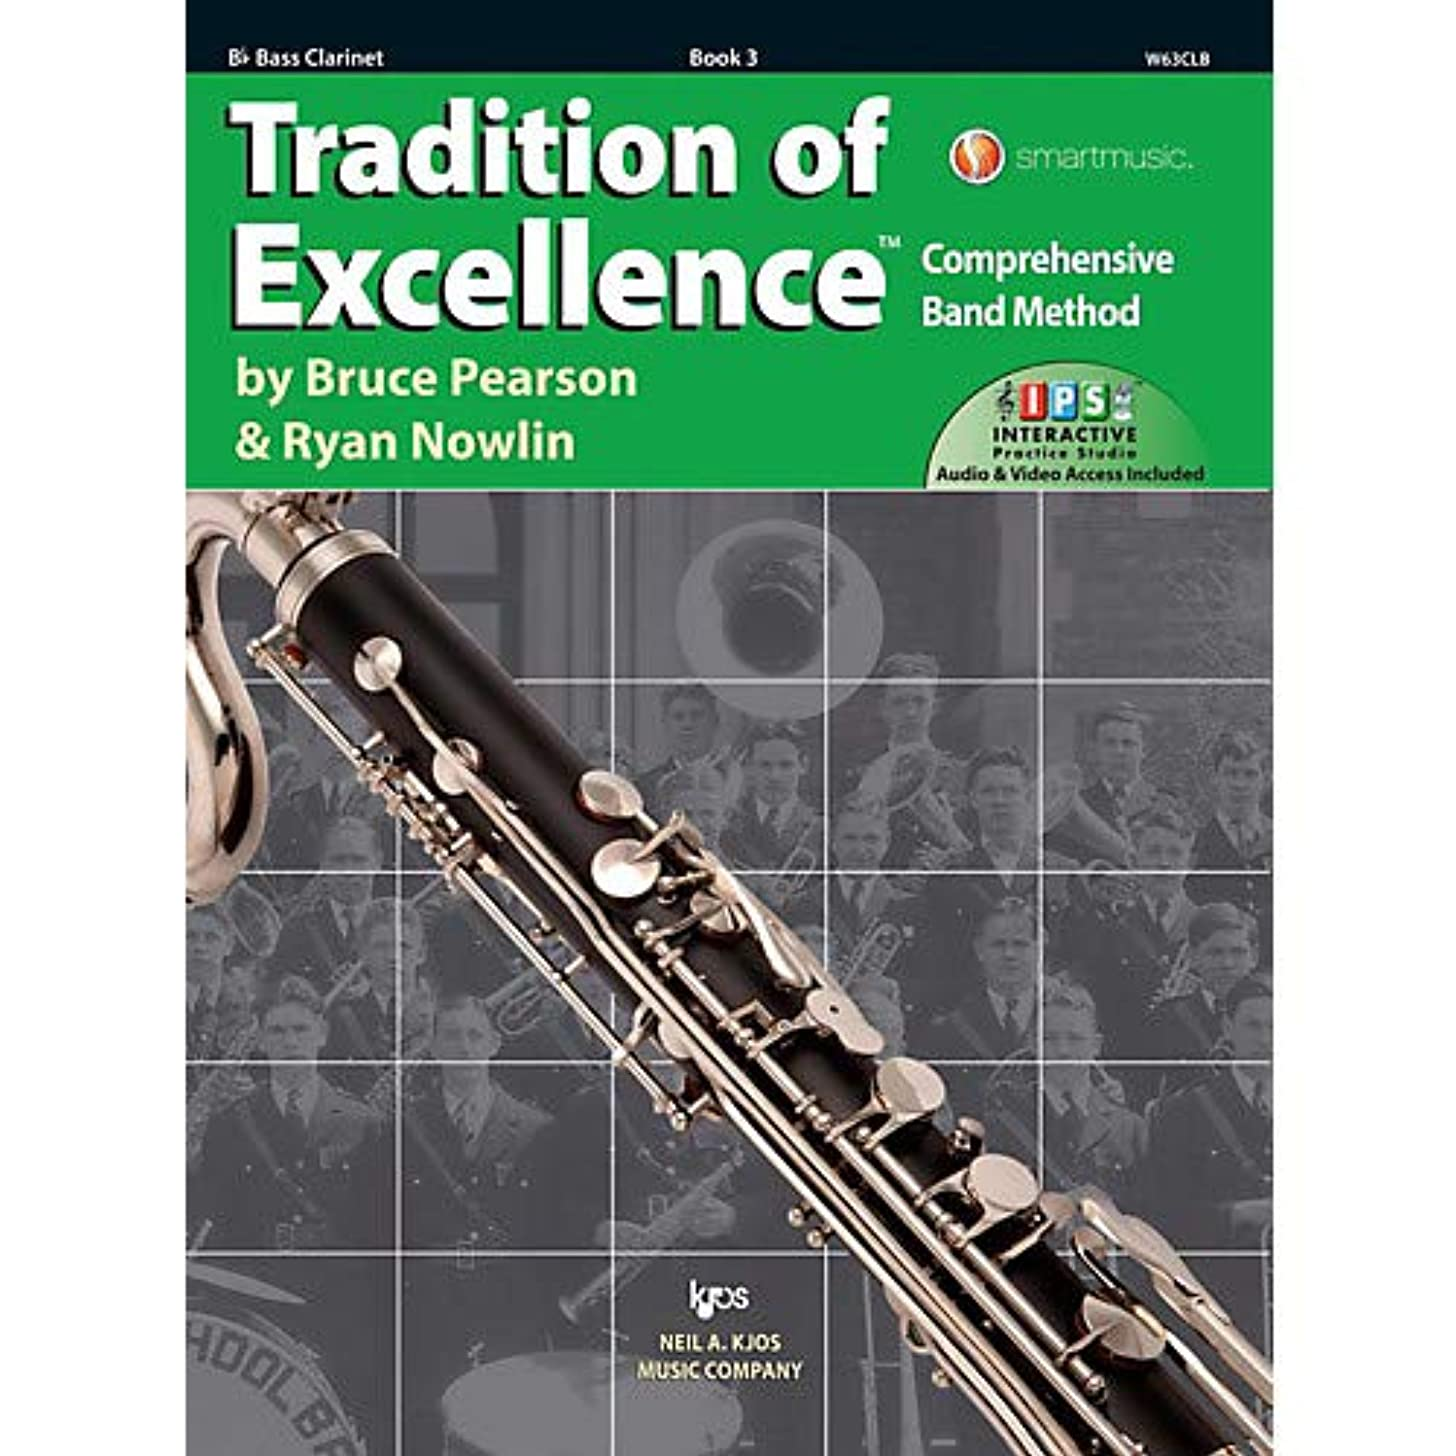 Tradition of Excellence Book 3 Bass clarinet Pack of 3